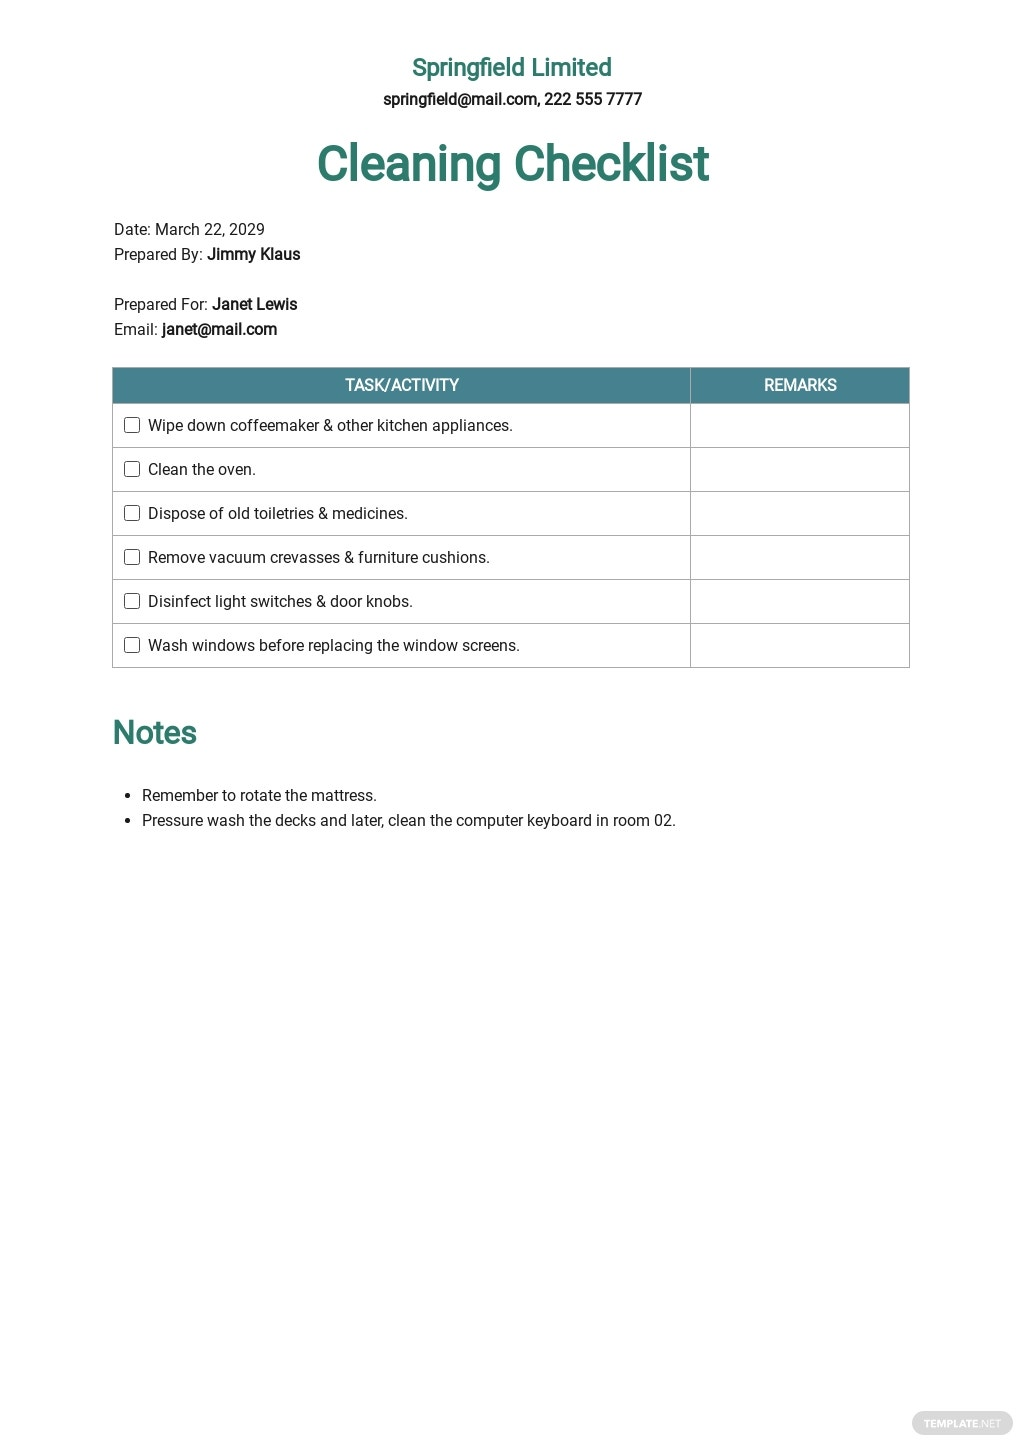 Spring Cleaning Checklist Template.jpe